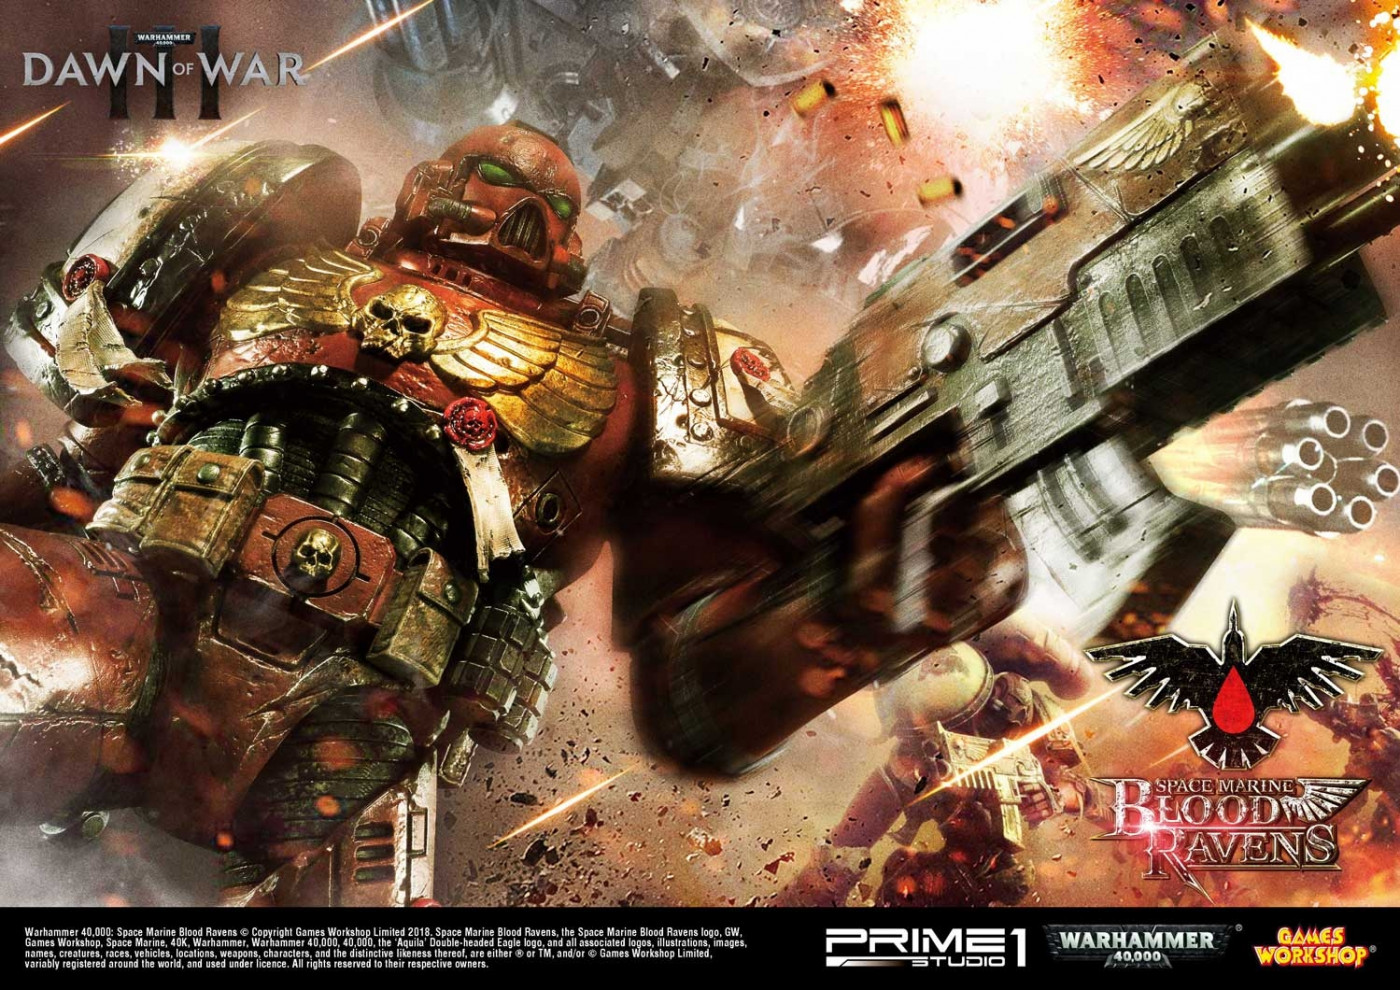 Premium Masterline Warhammer 40,000: Dawn of War III Space Marine Blood Ravens Deluxe Version